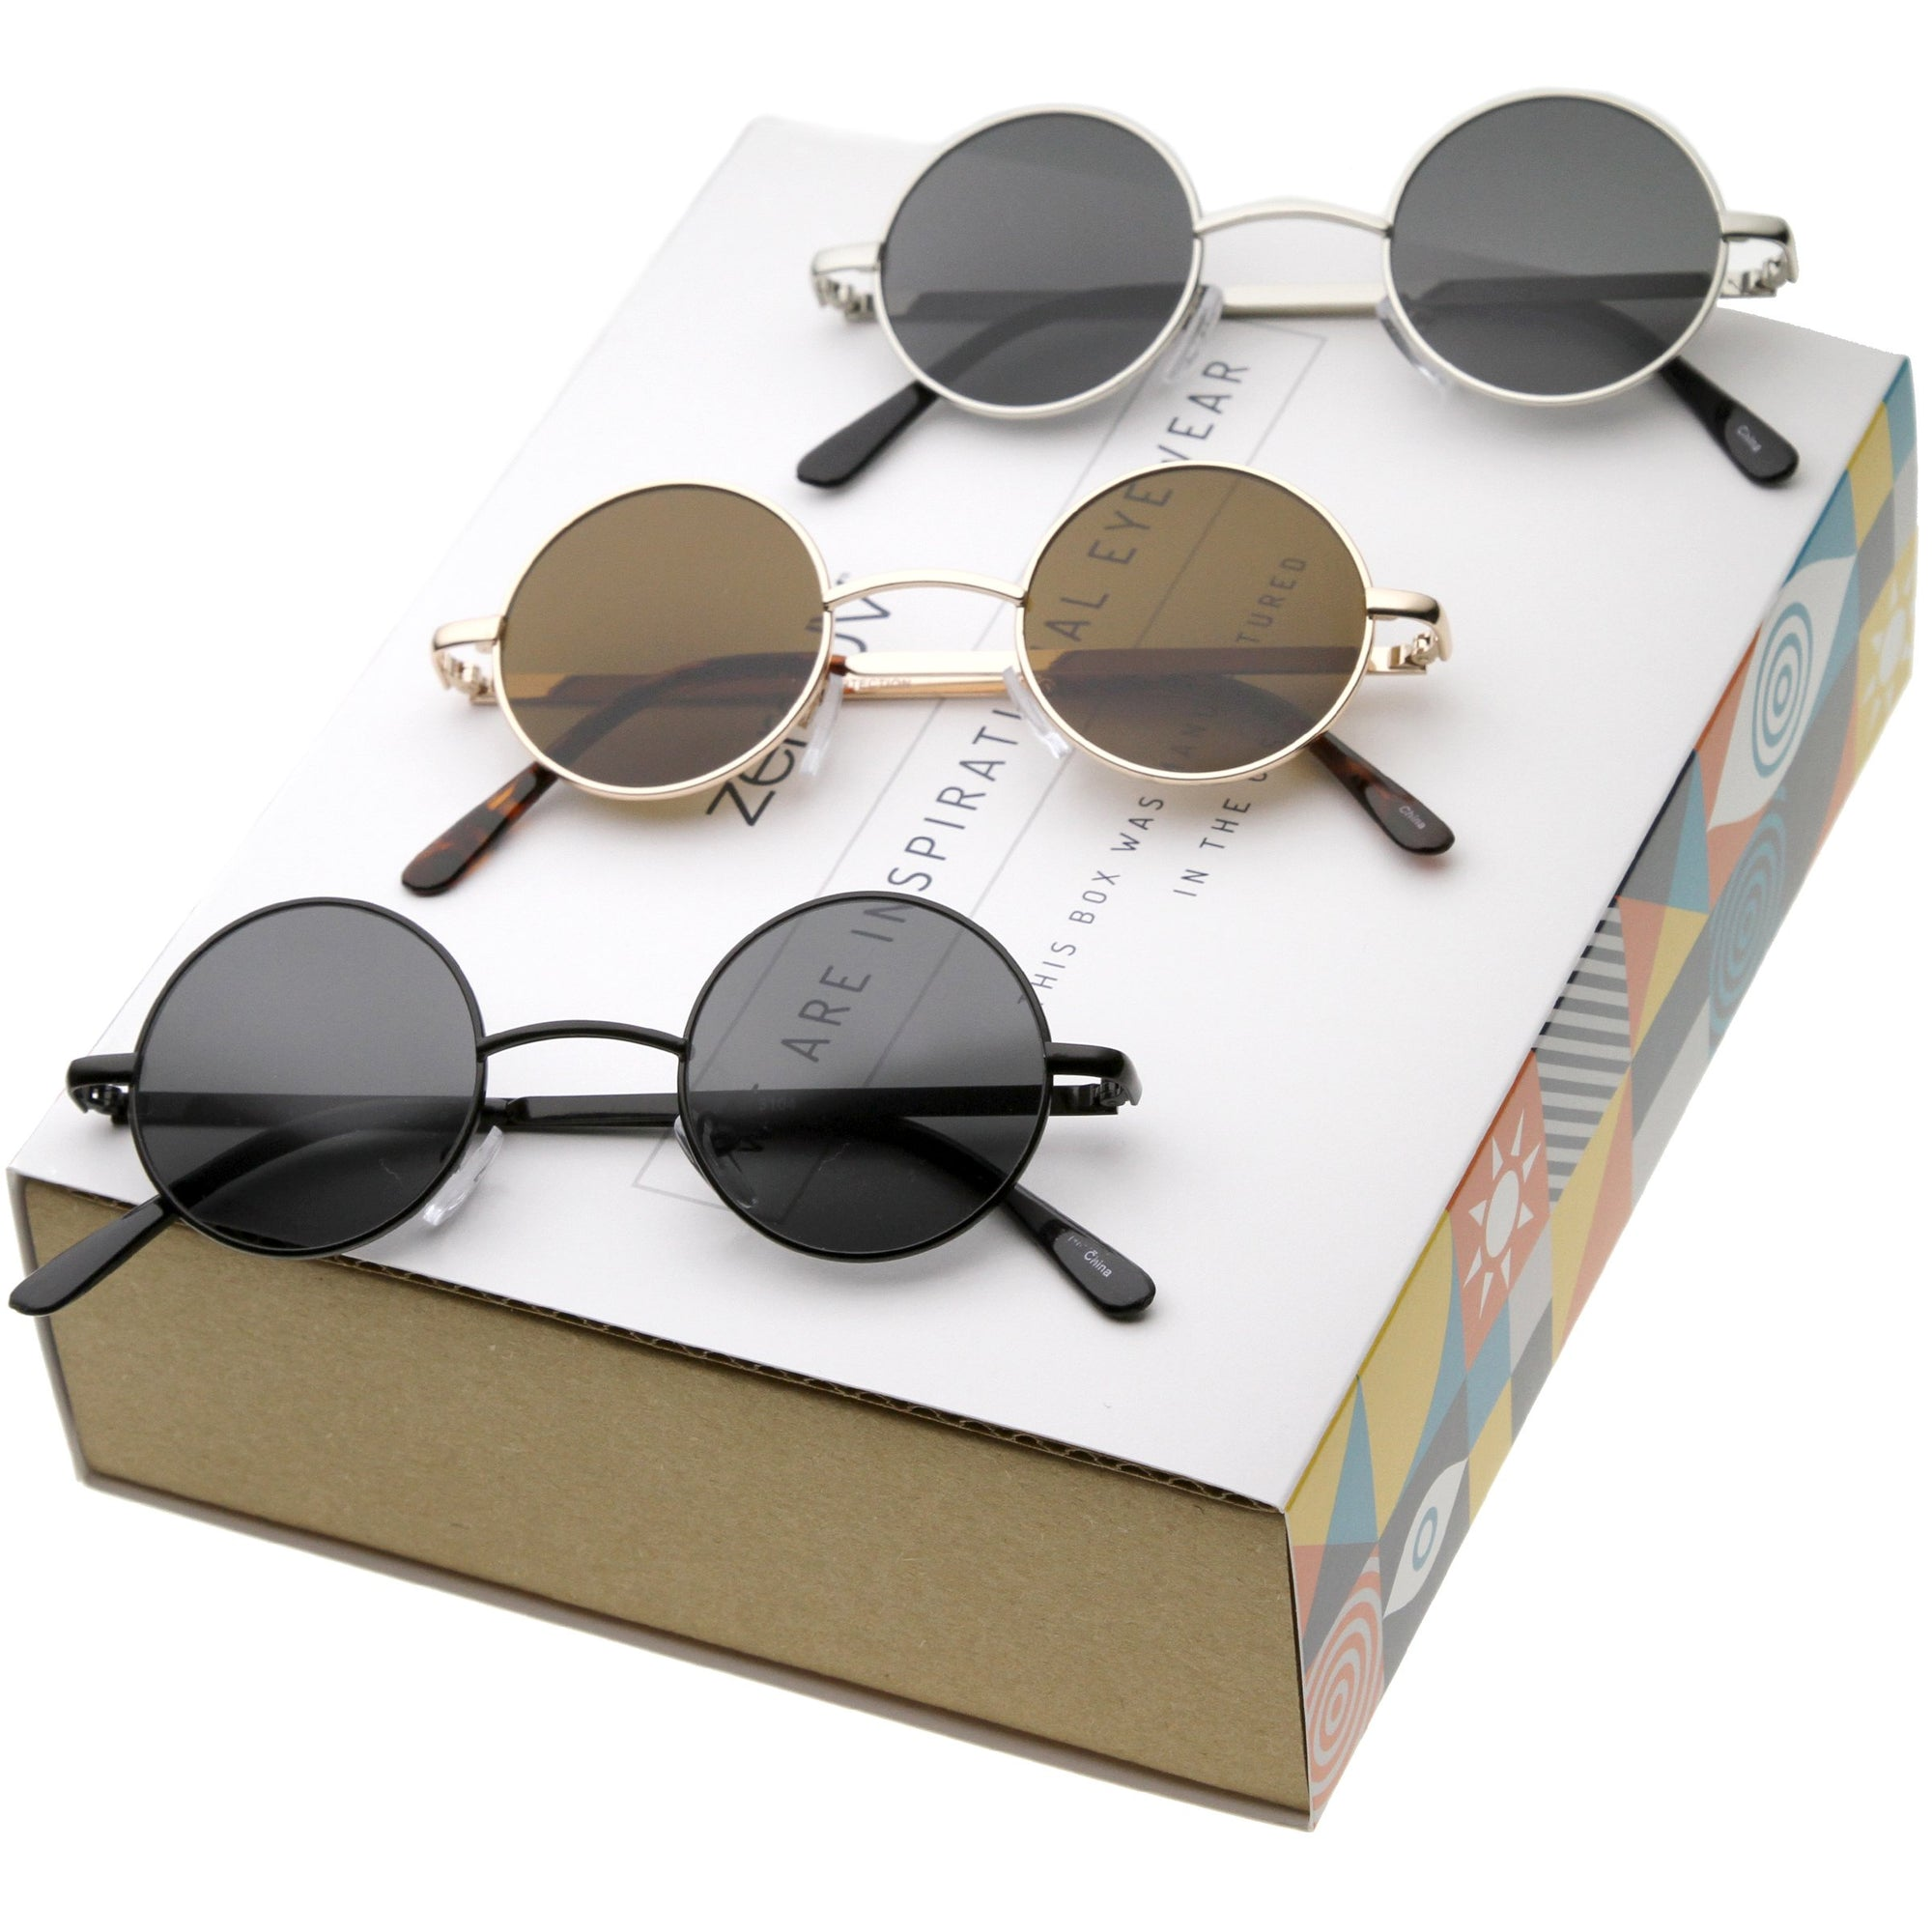 1405f0cd1fe51 Retro 1970s Lennon Round Sunglasses 3 Pack - zeroUV